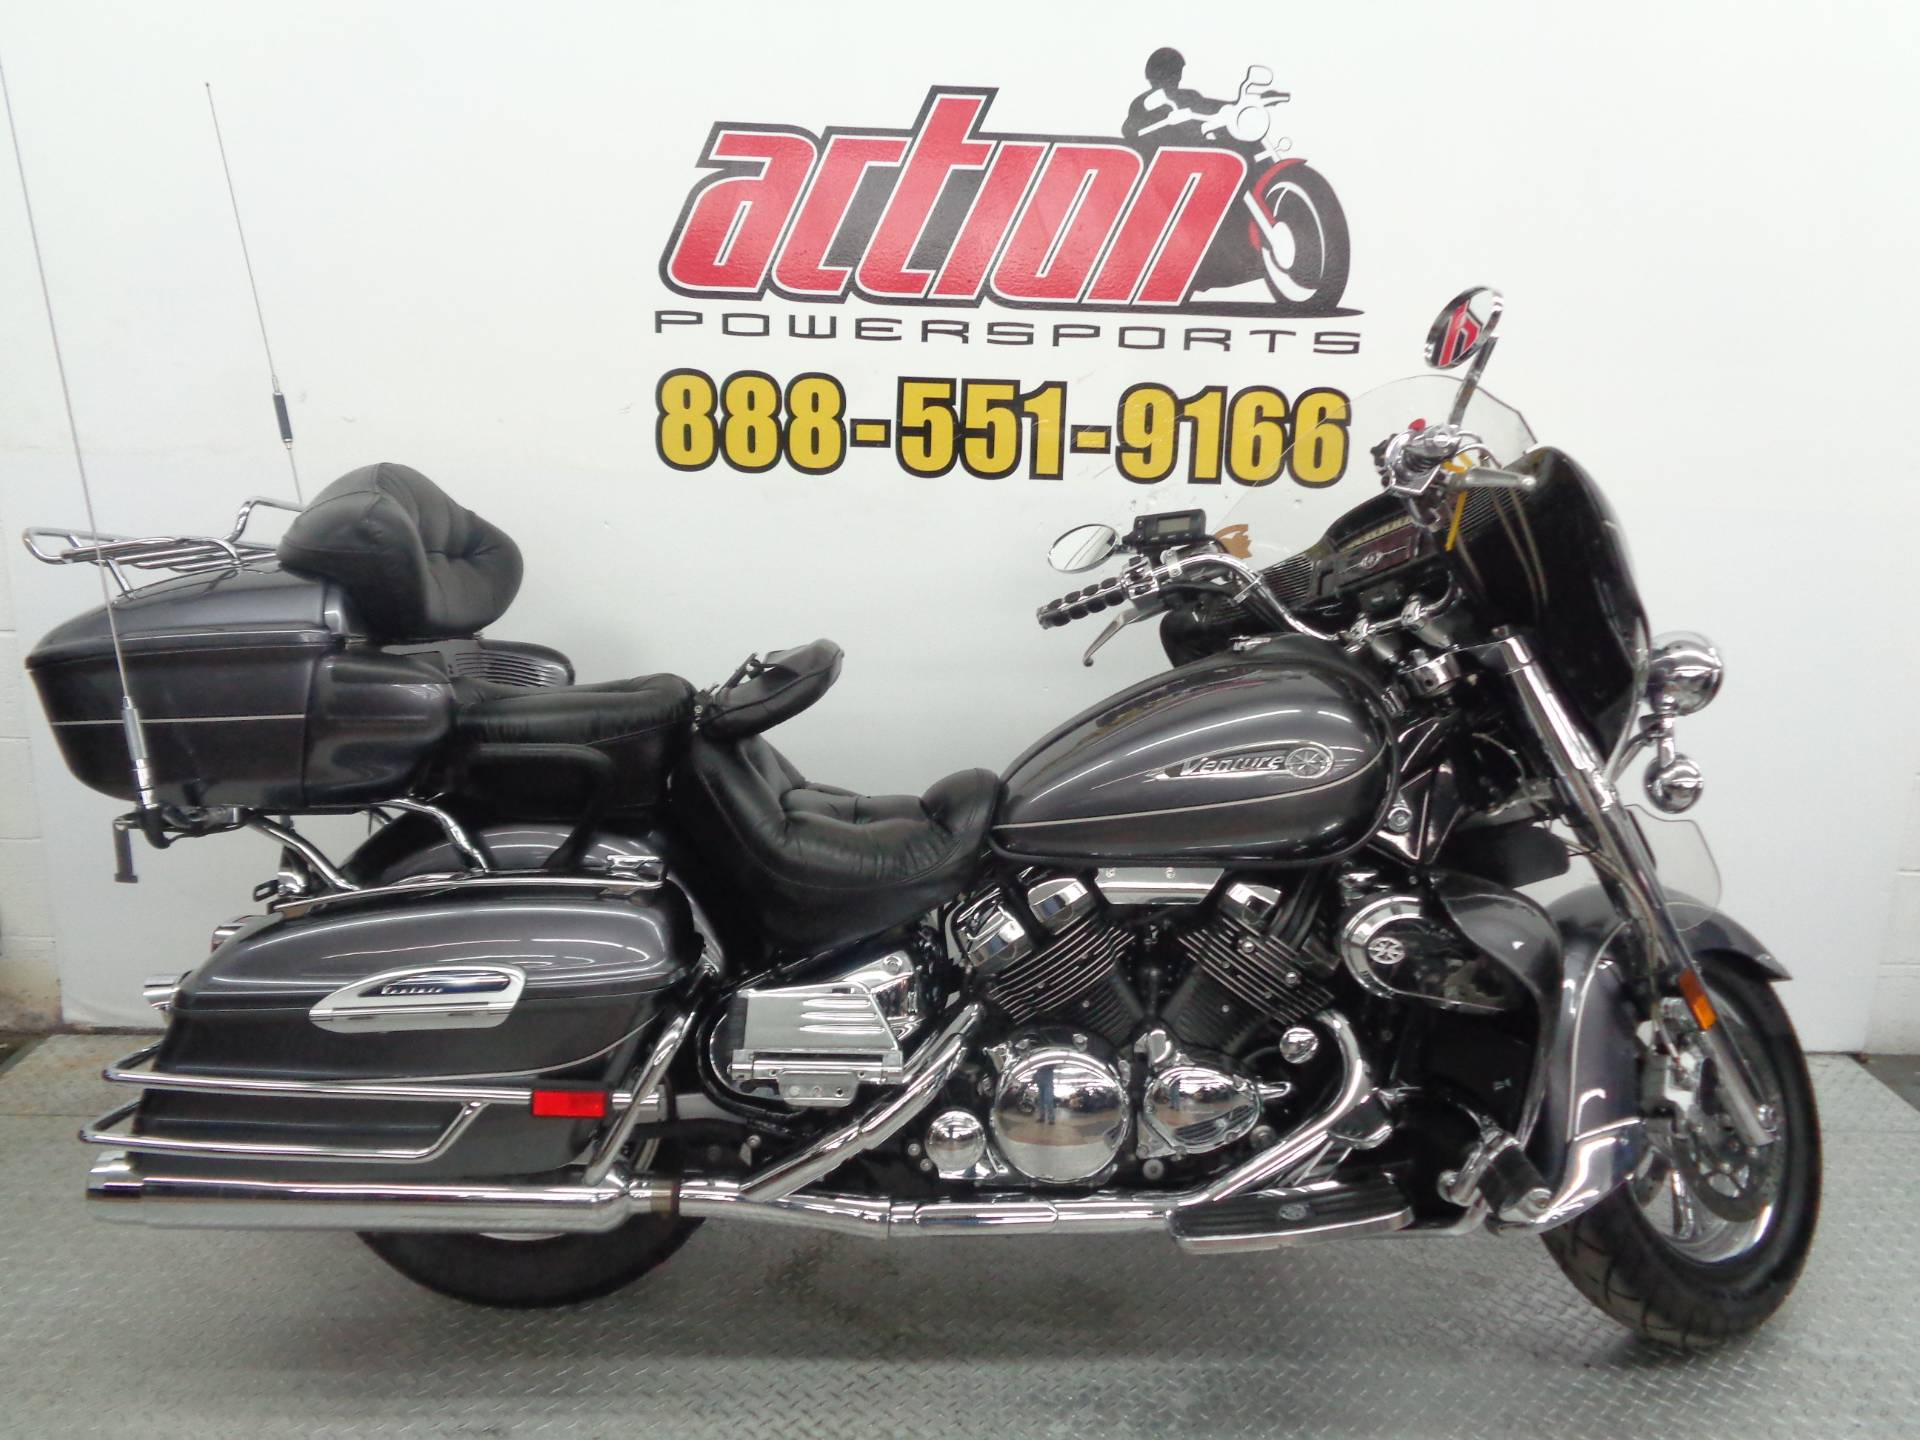 2008 Yamaha Royal Star® Venture in Tulsa, Oklahoma - Photo 1